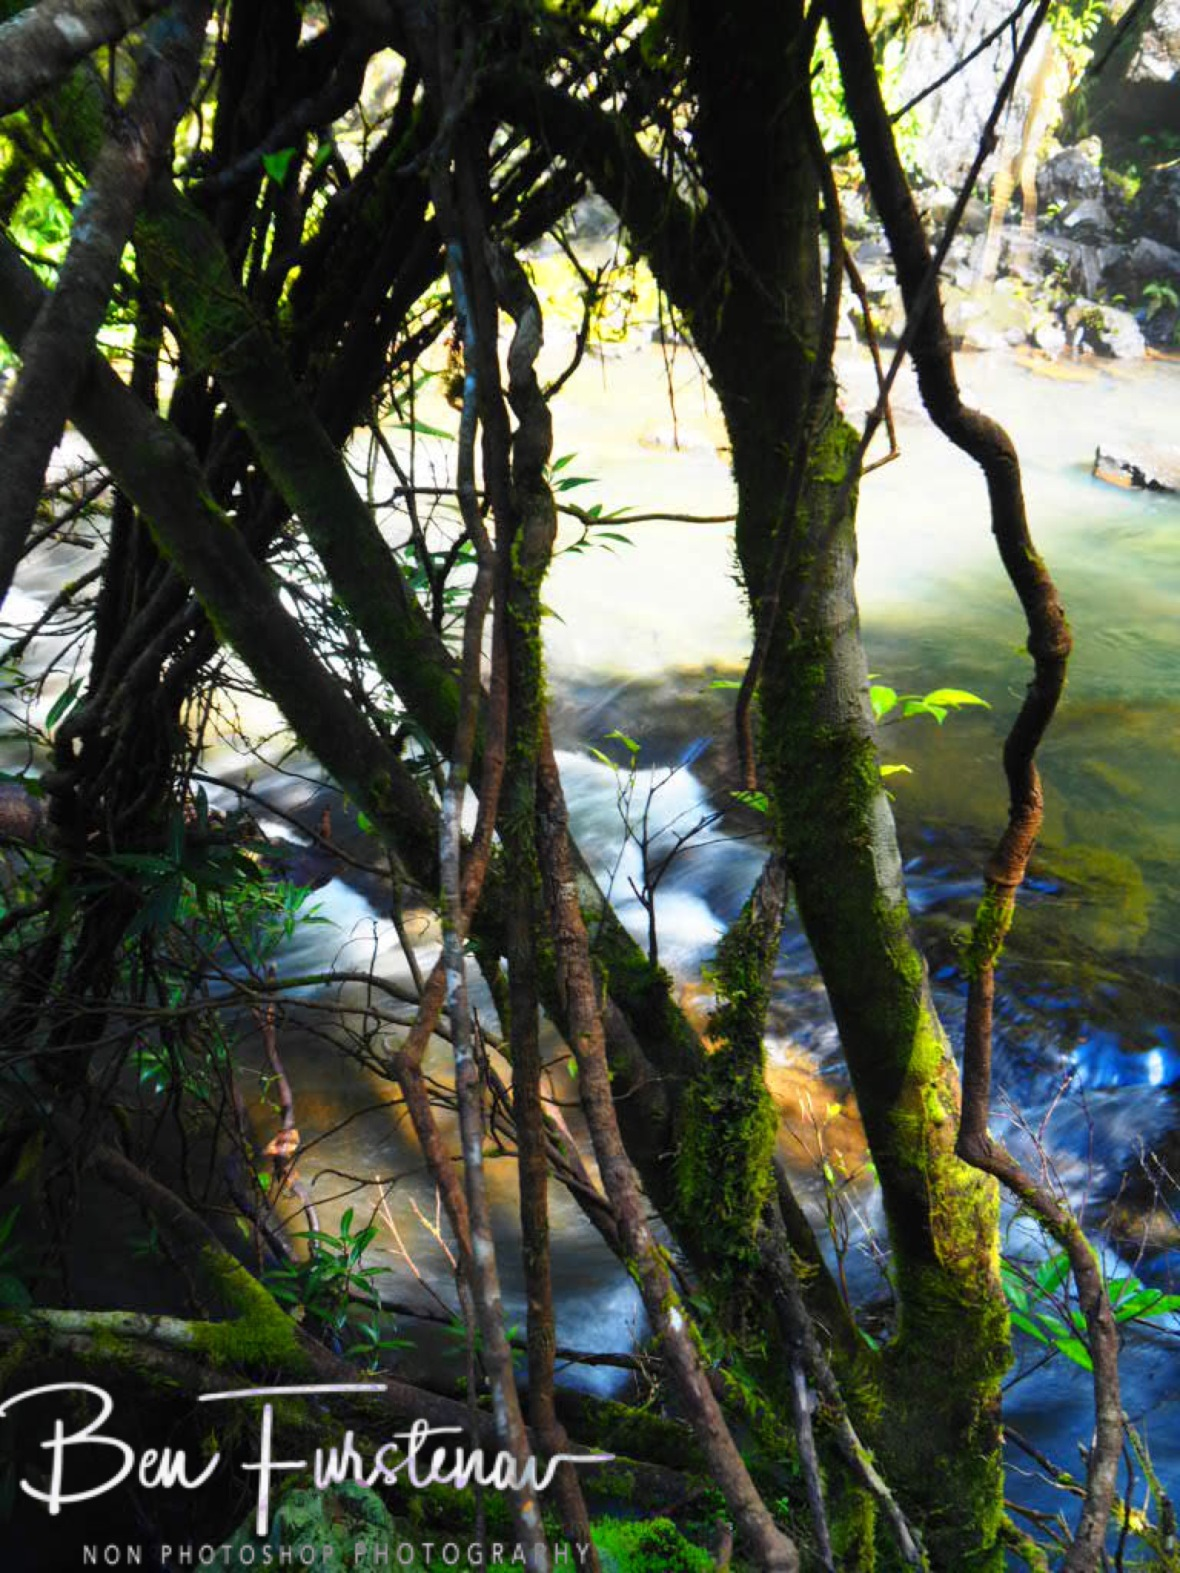 Mossy and slippery conditions, Atherton Tablelands, Far North Queensland, Australia